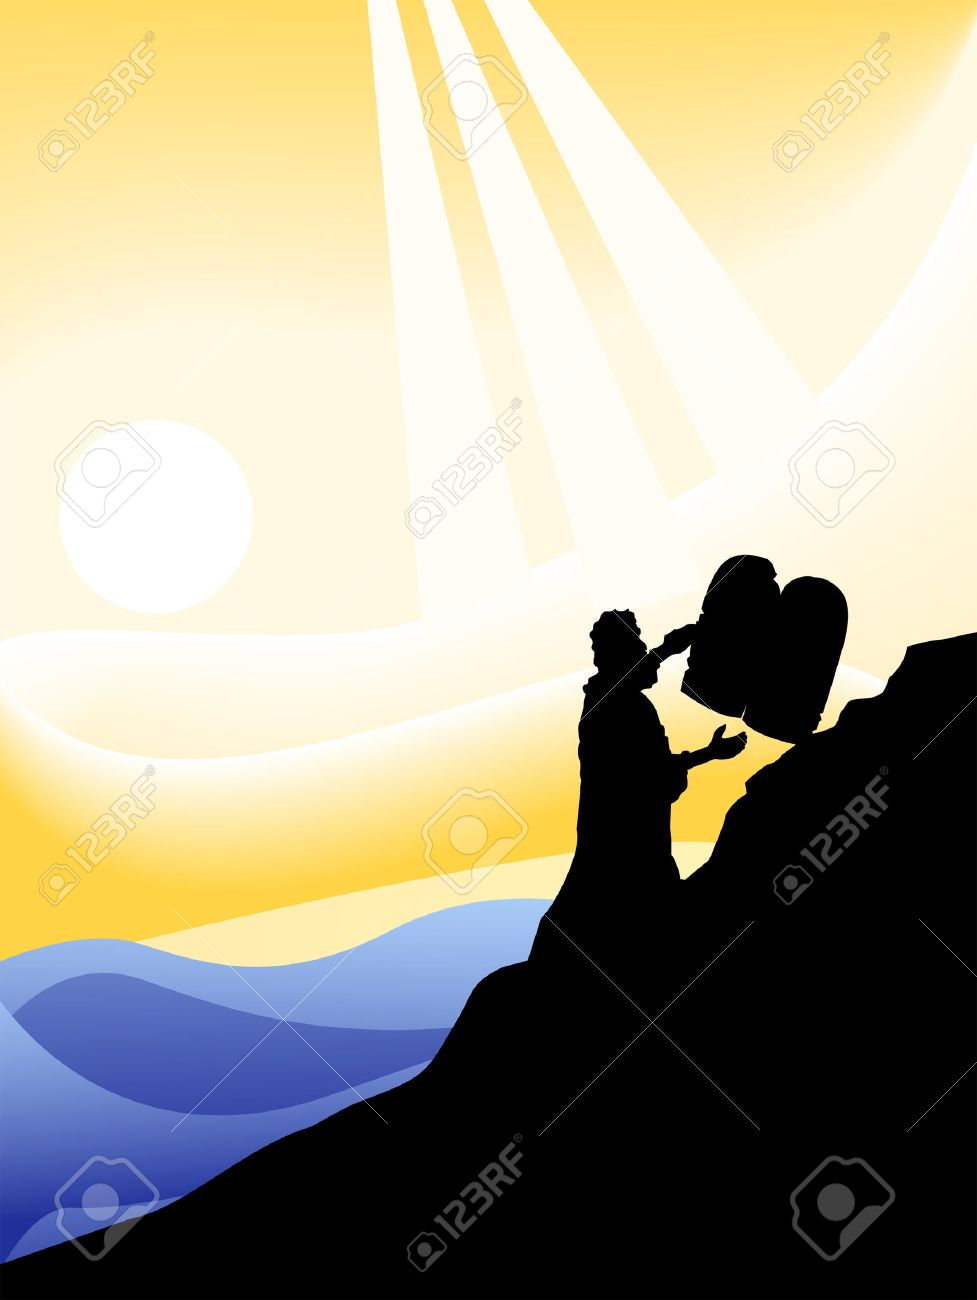 the ten commandments silhouette series royalty free cliparts